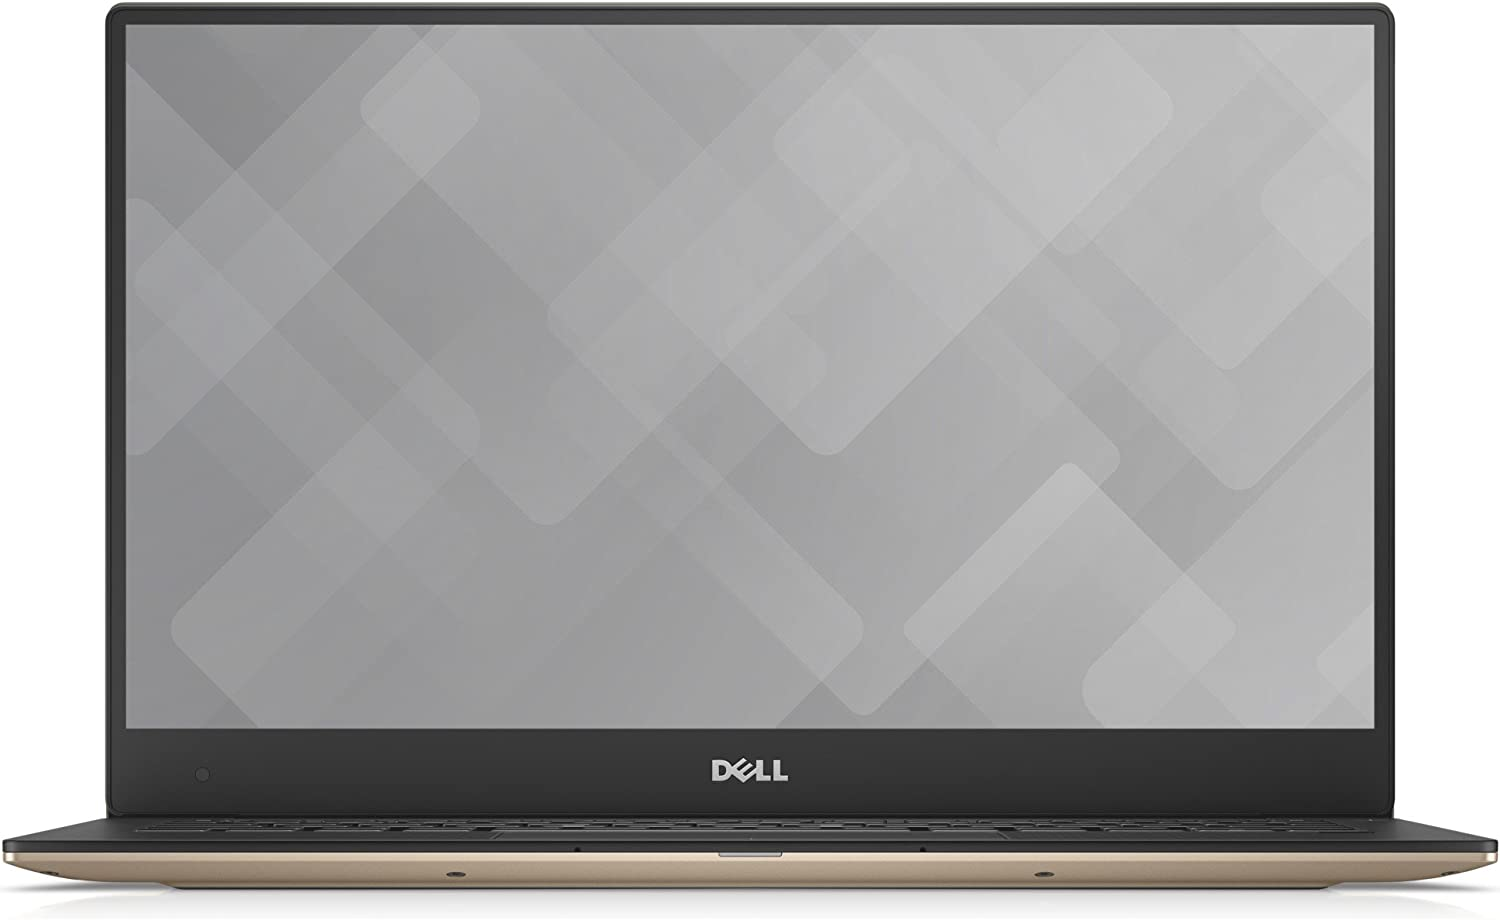 "Dell XPS 13 9360 13.3"" Laptop QHD+ Touchscreen 7th Gen Intel Core i5-7200U, 8GB RAM, 256GB NVME SSD Machined Aluminum Display Silver Win 10 ROSE GOLD (Renewed)"